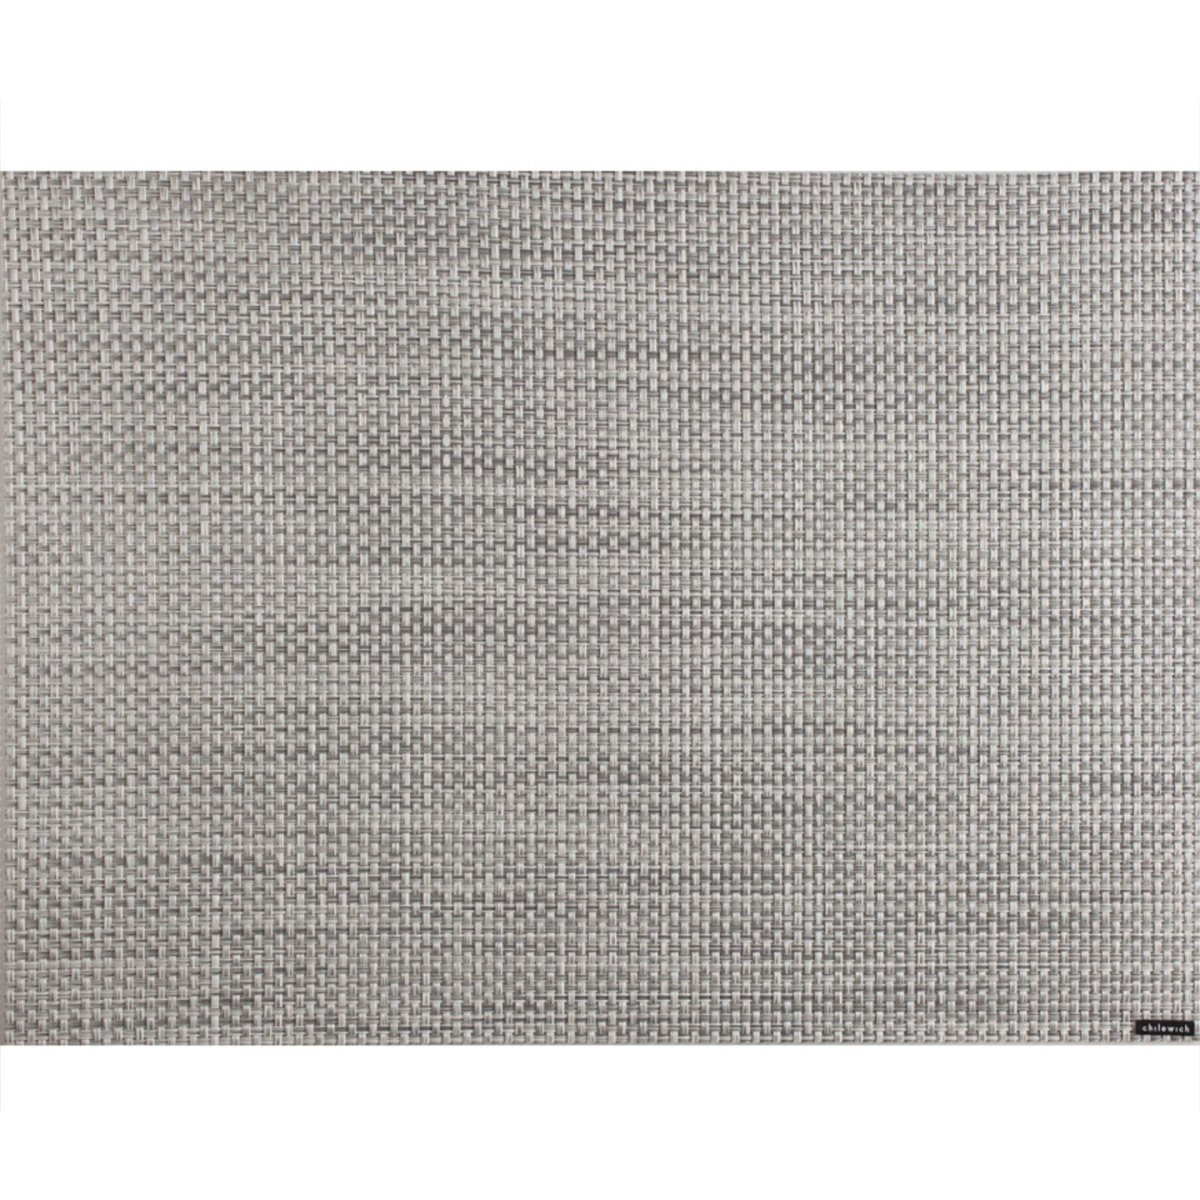 Placemat Basketweave - White/Silver - Minimax